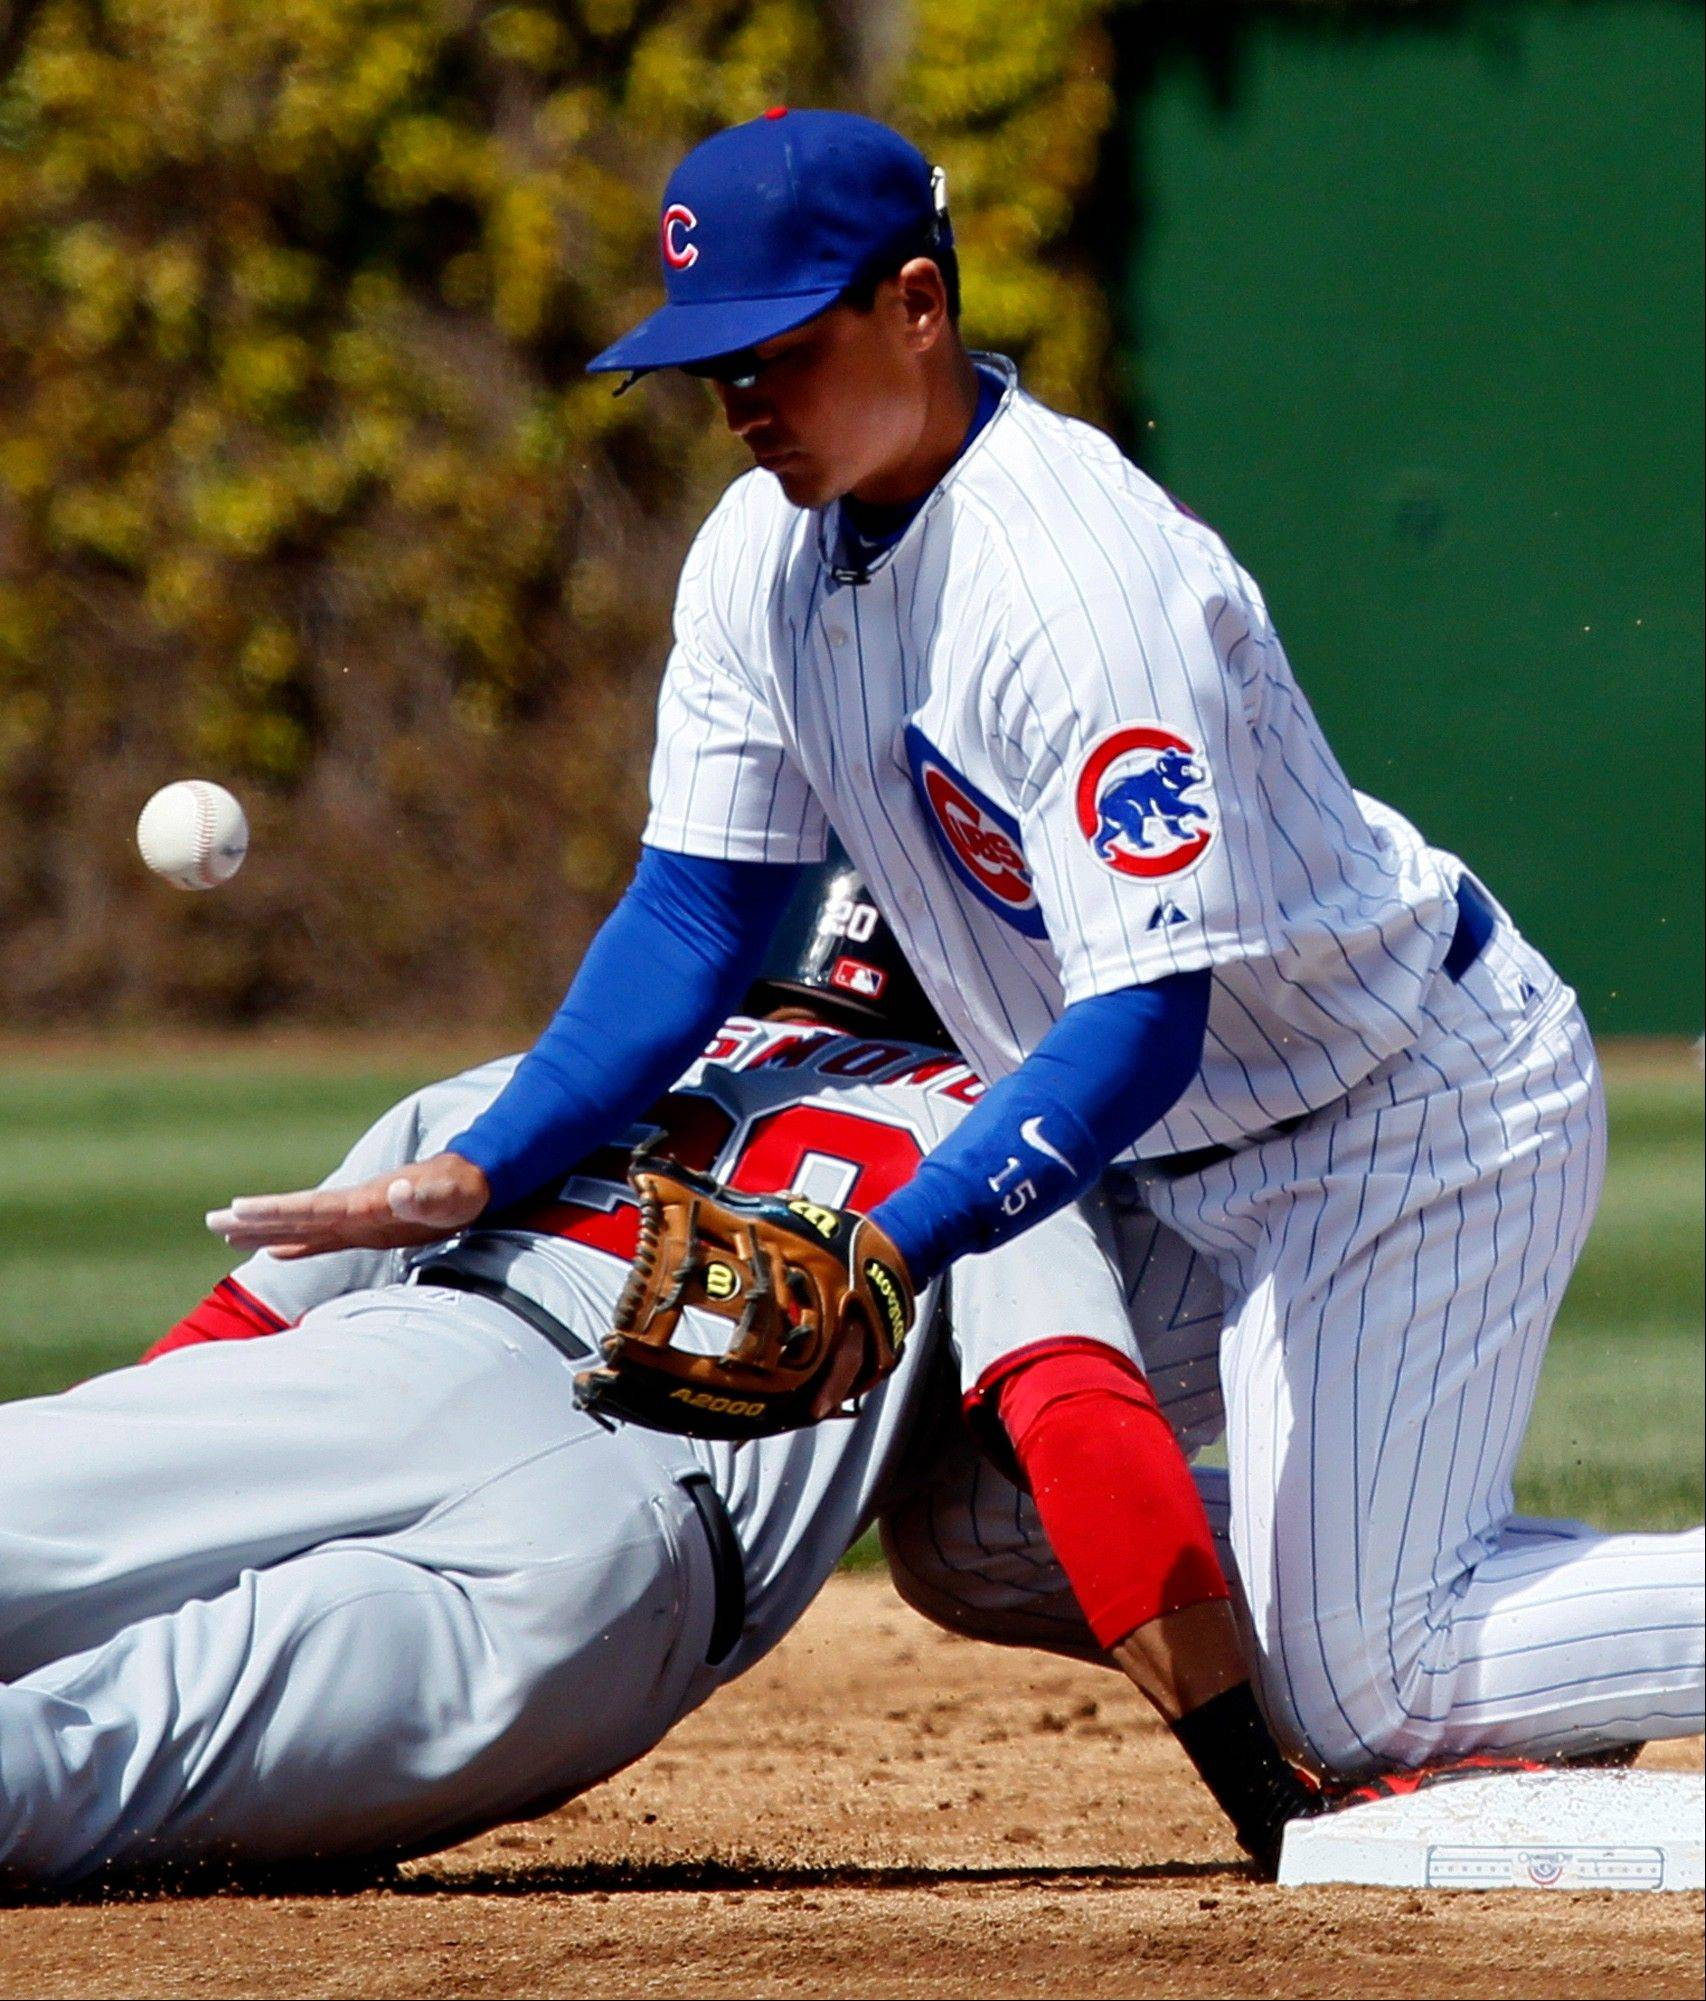 Cubs blow late lead, lose to Nationals